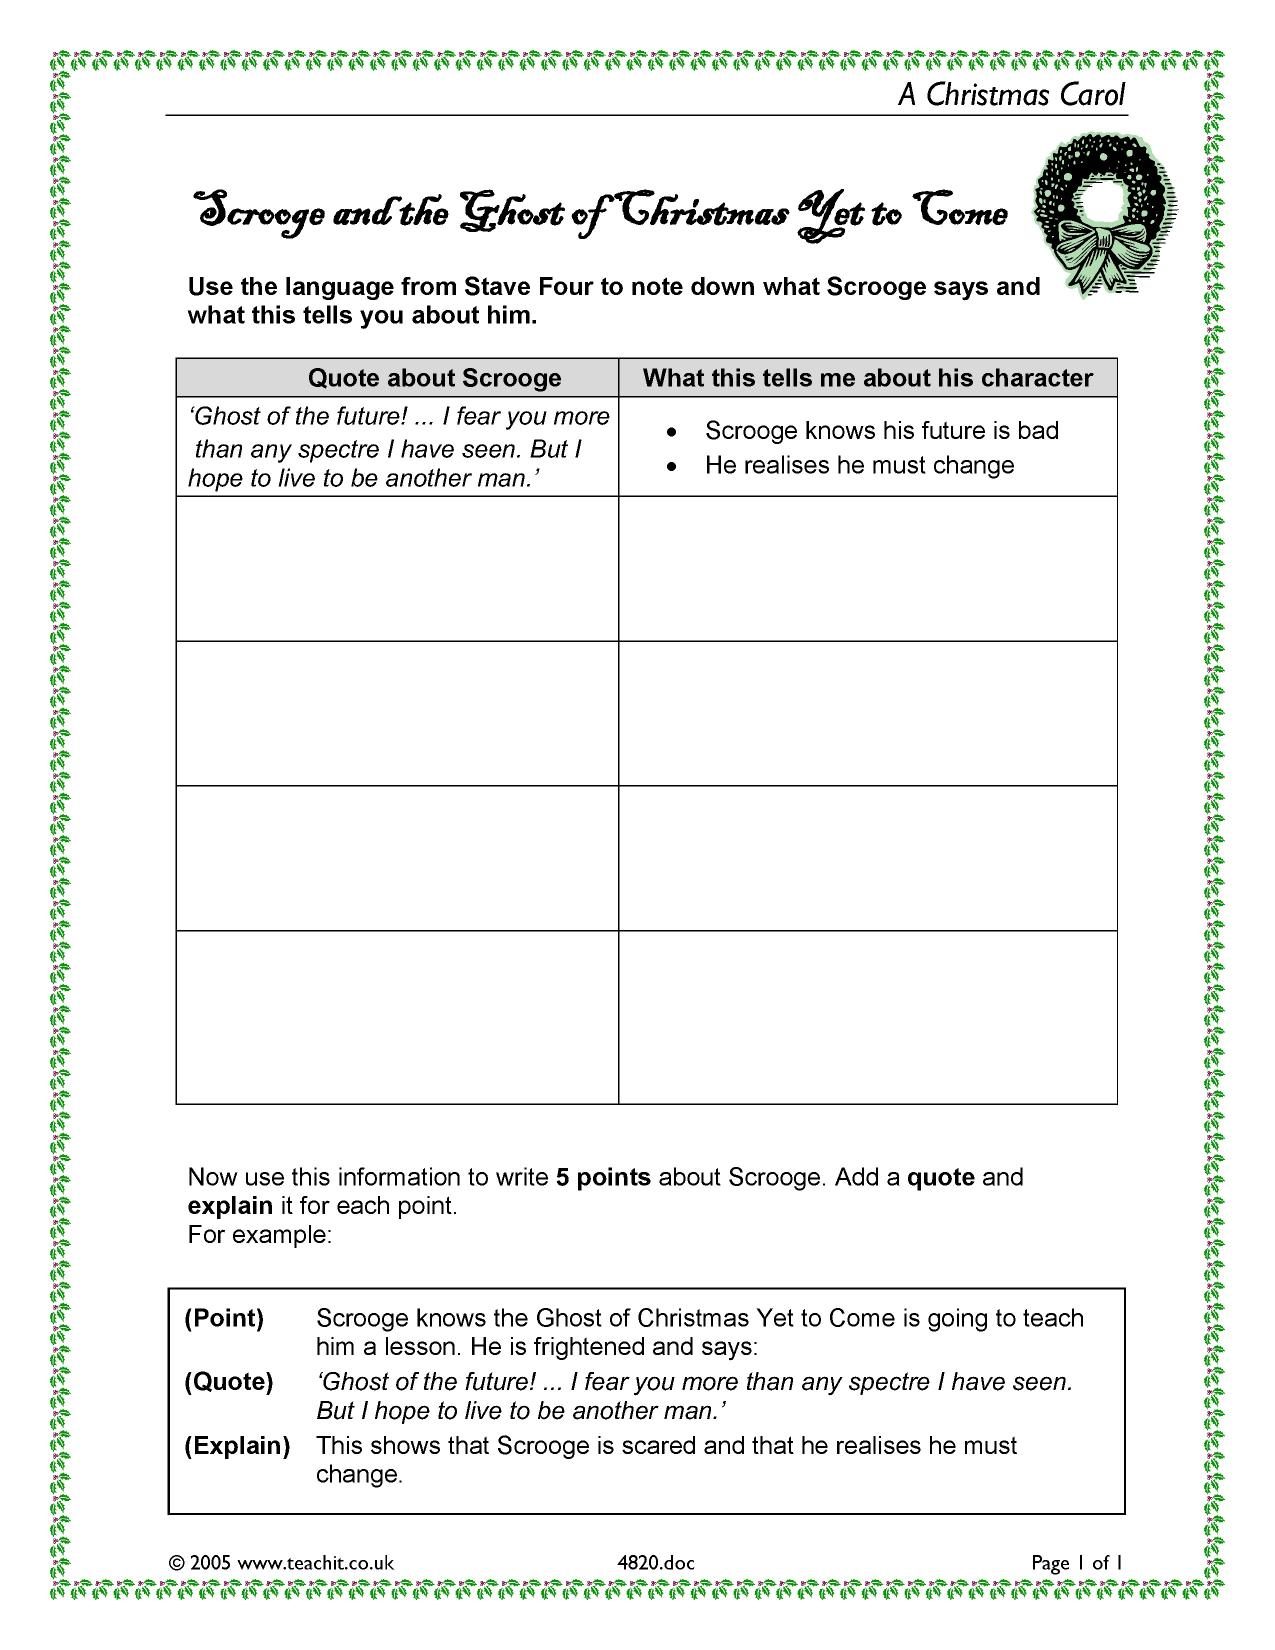 KS3 A Christmas Carol by Charles Dickens – A Christmas Carol Worksheets